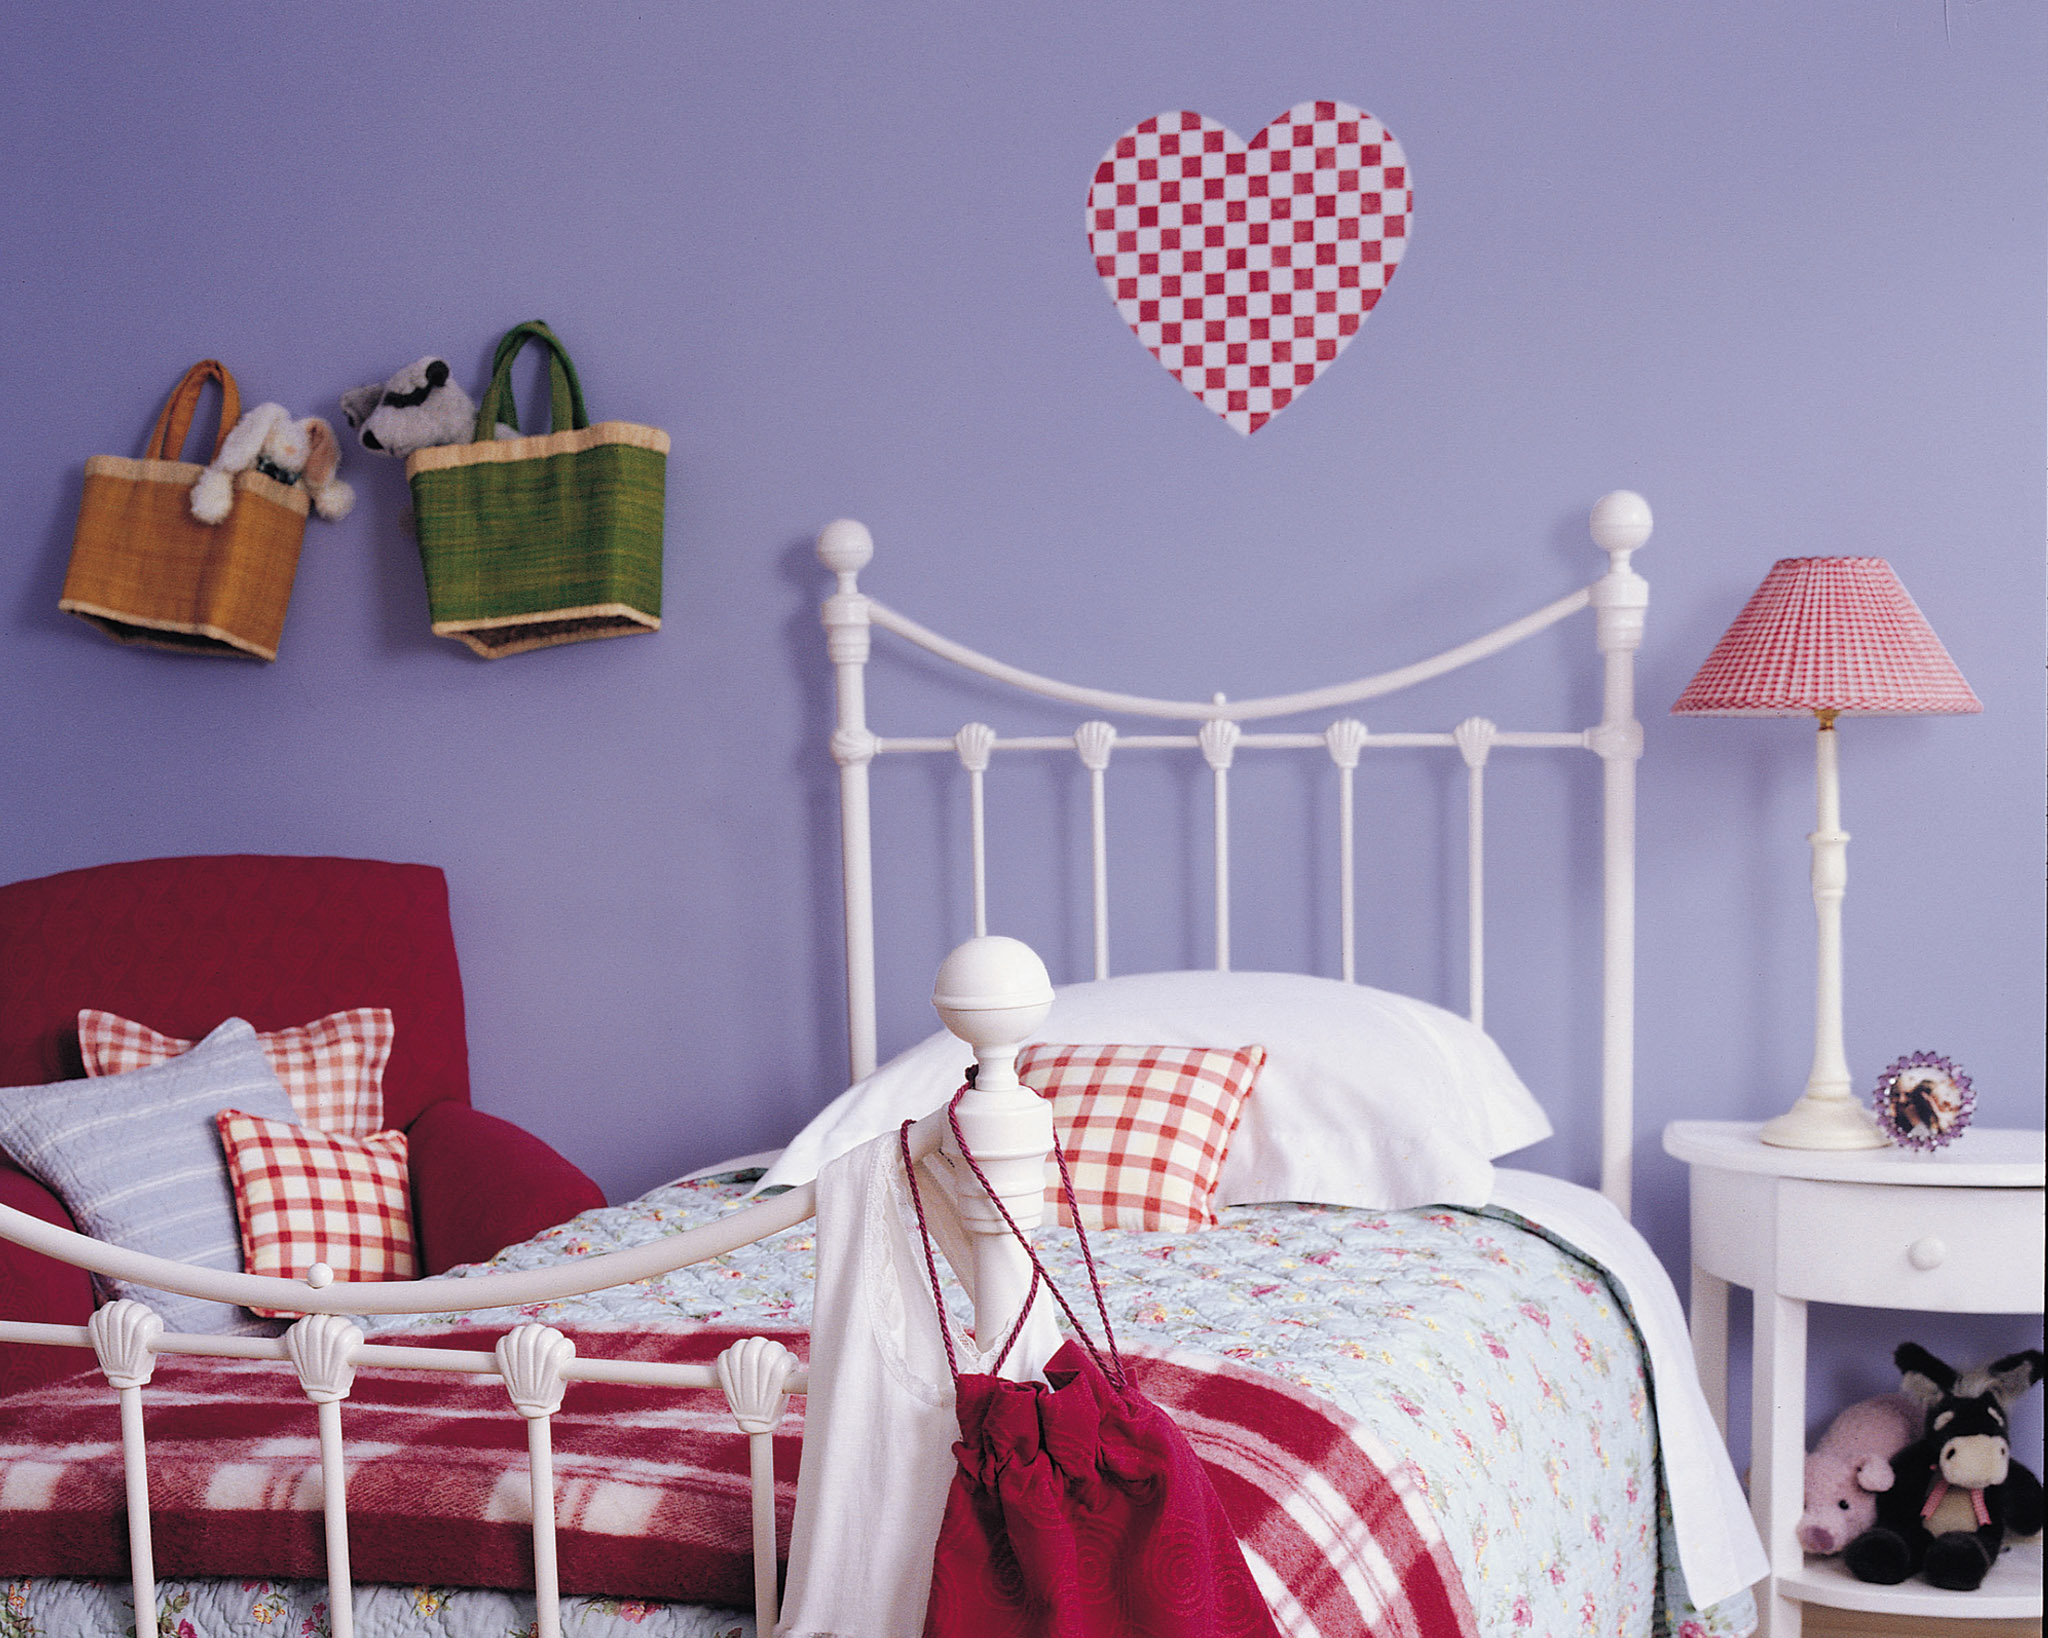 Try decorating with violet for a versatile girl's bedroom